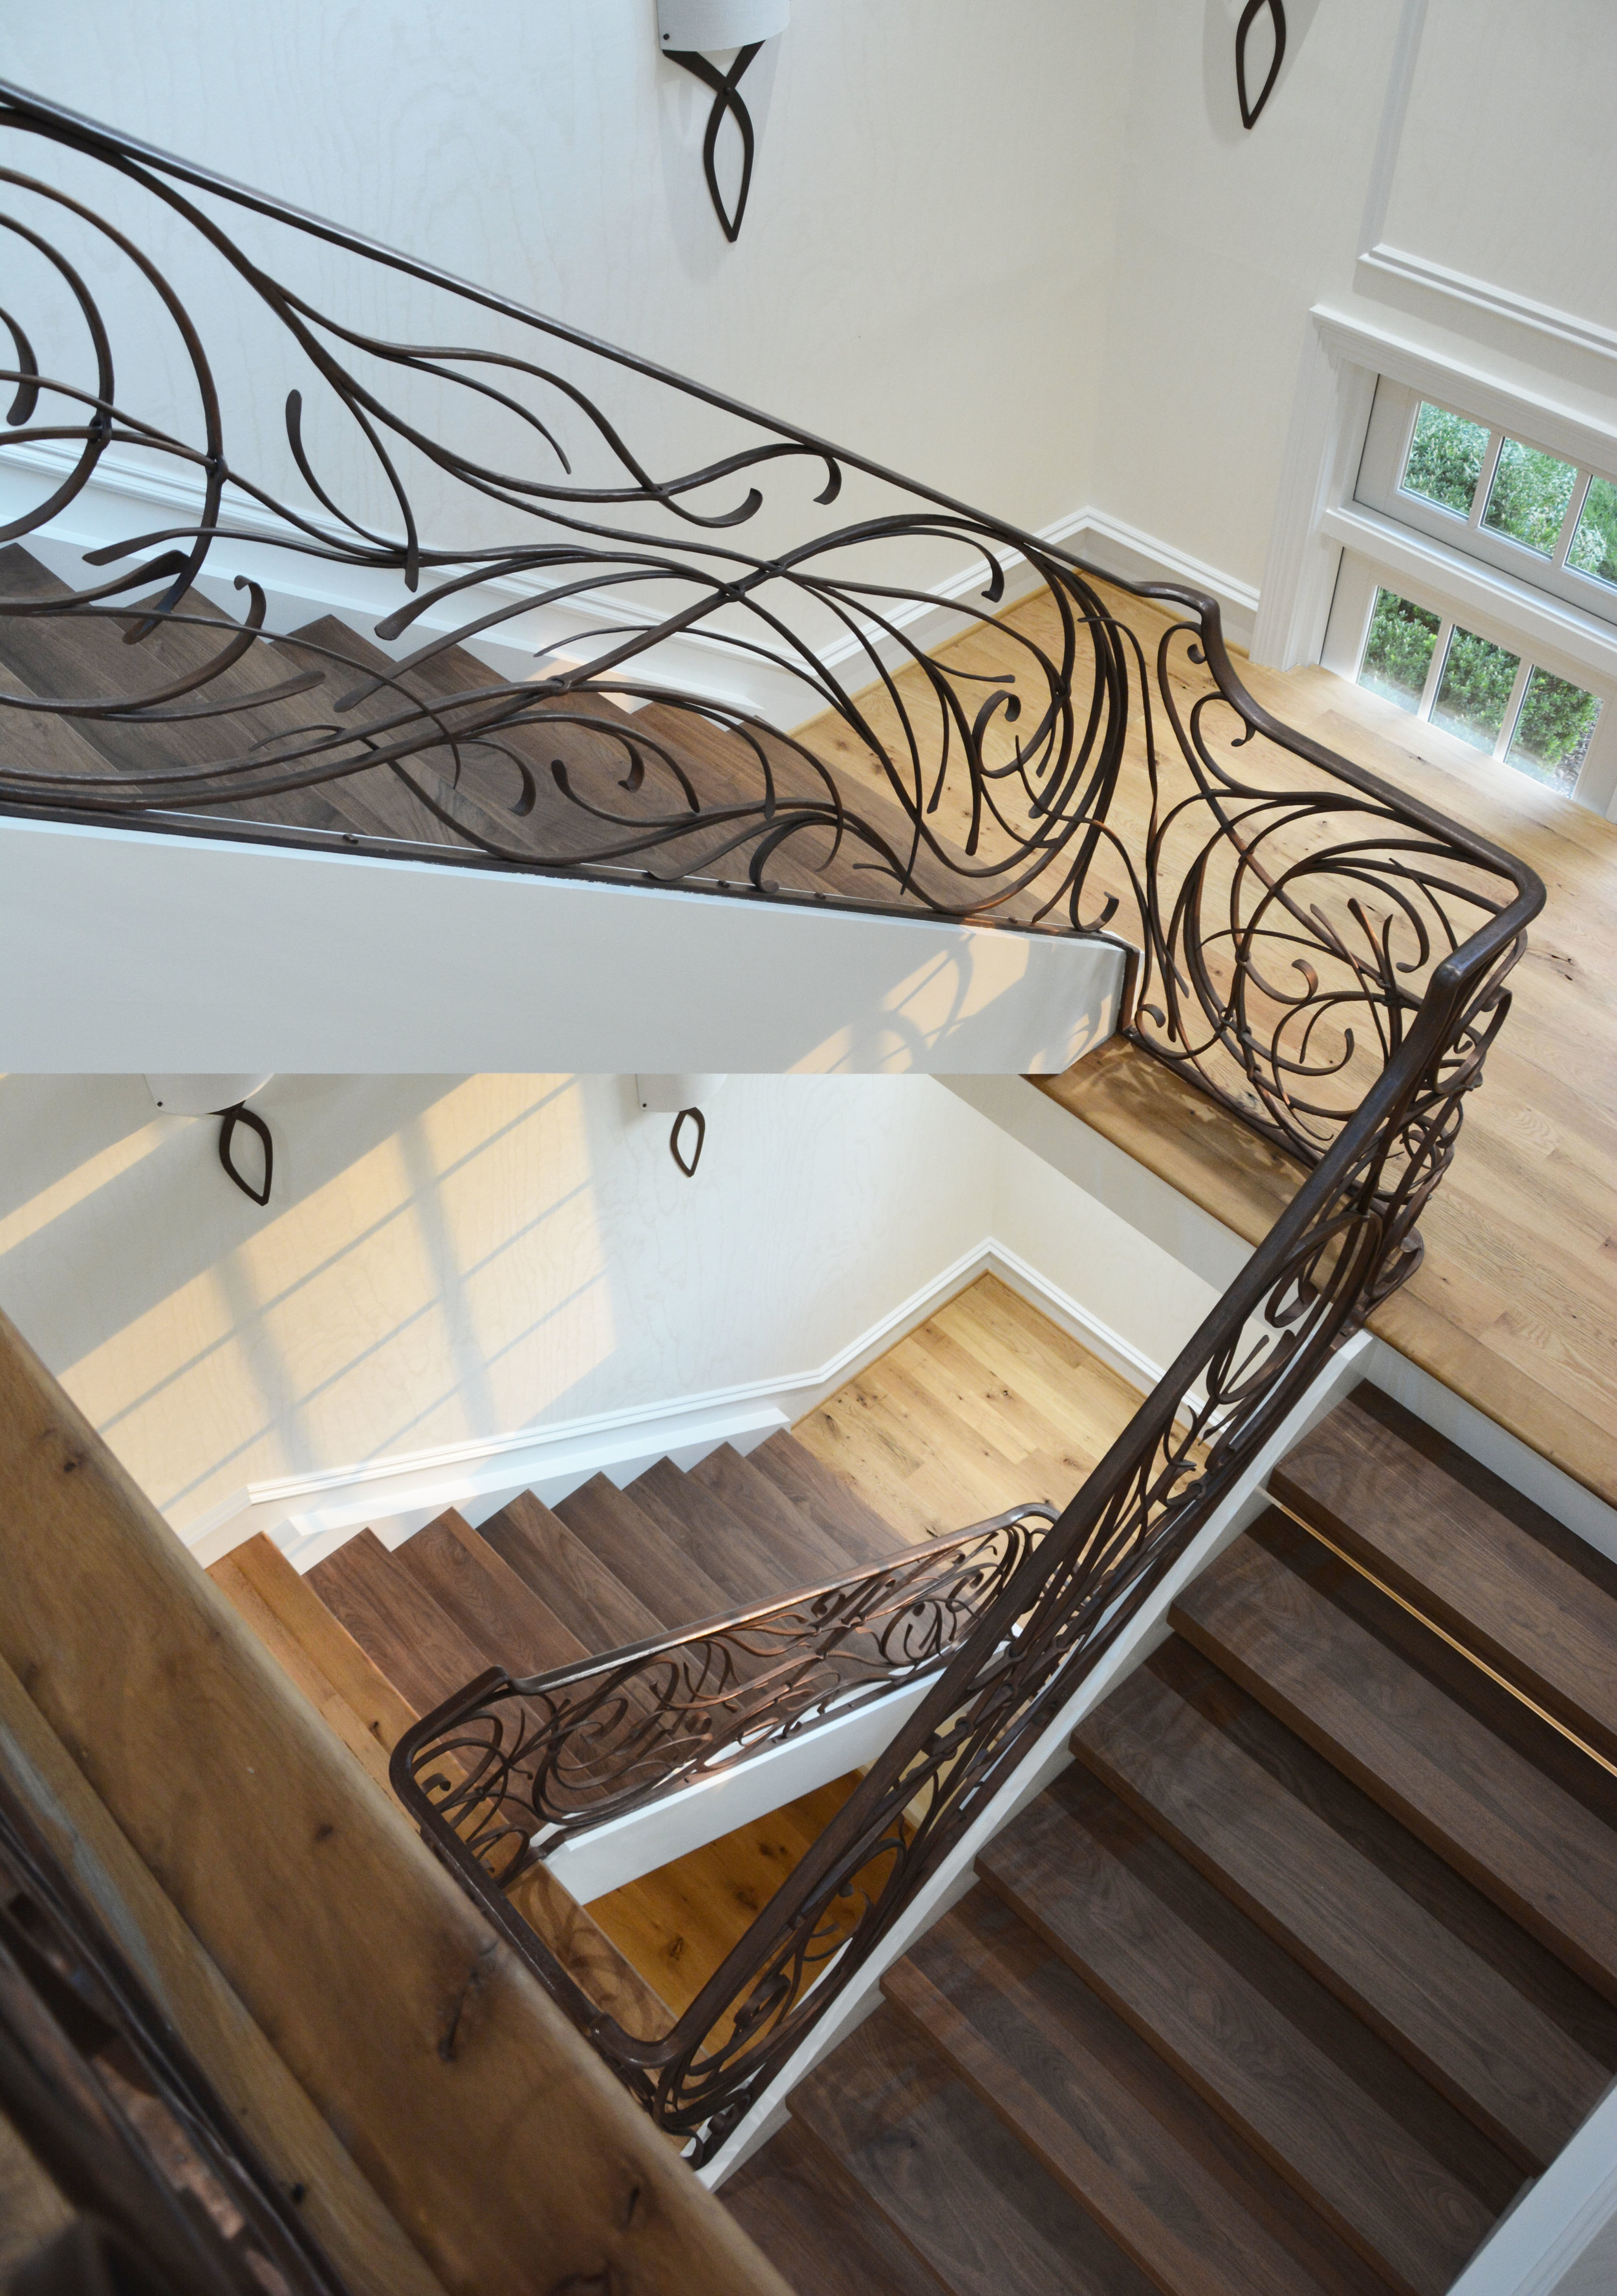 ARCHITECTURE - The architectural metalwork we create is rooted in functional design with an emphasis on sculptural details. Working with old world, craftsman techniques permits us to hammer out forms, textures, and designs found only in our work. We take great pride in designing work appropriate to our clients style and architecture of the space.